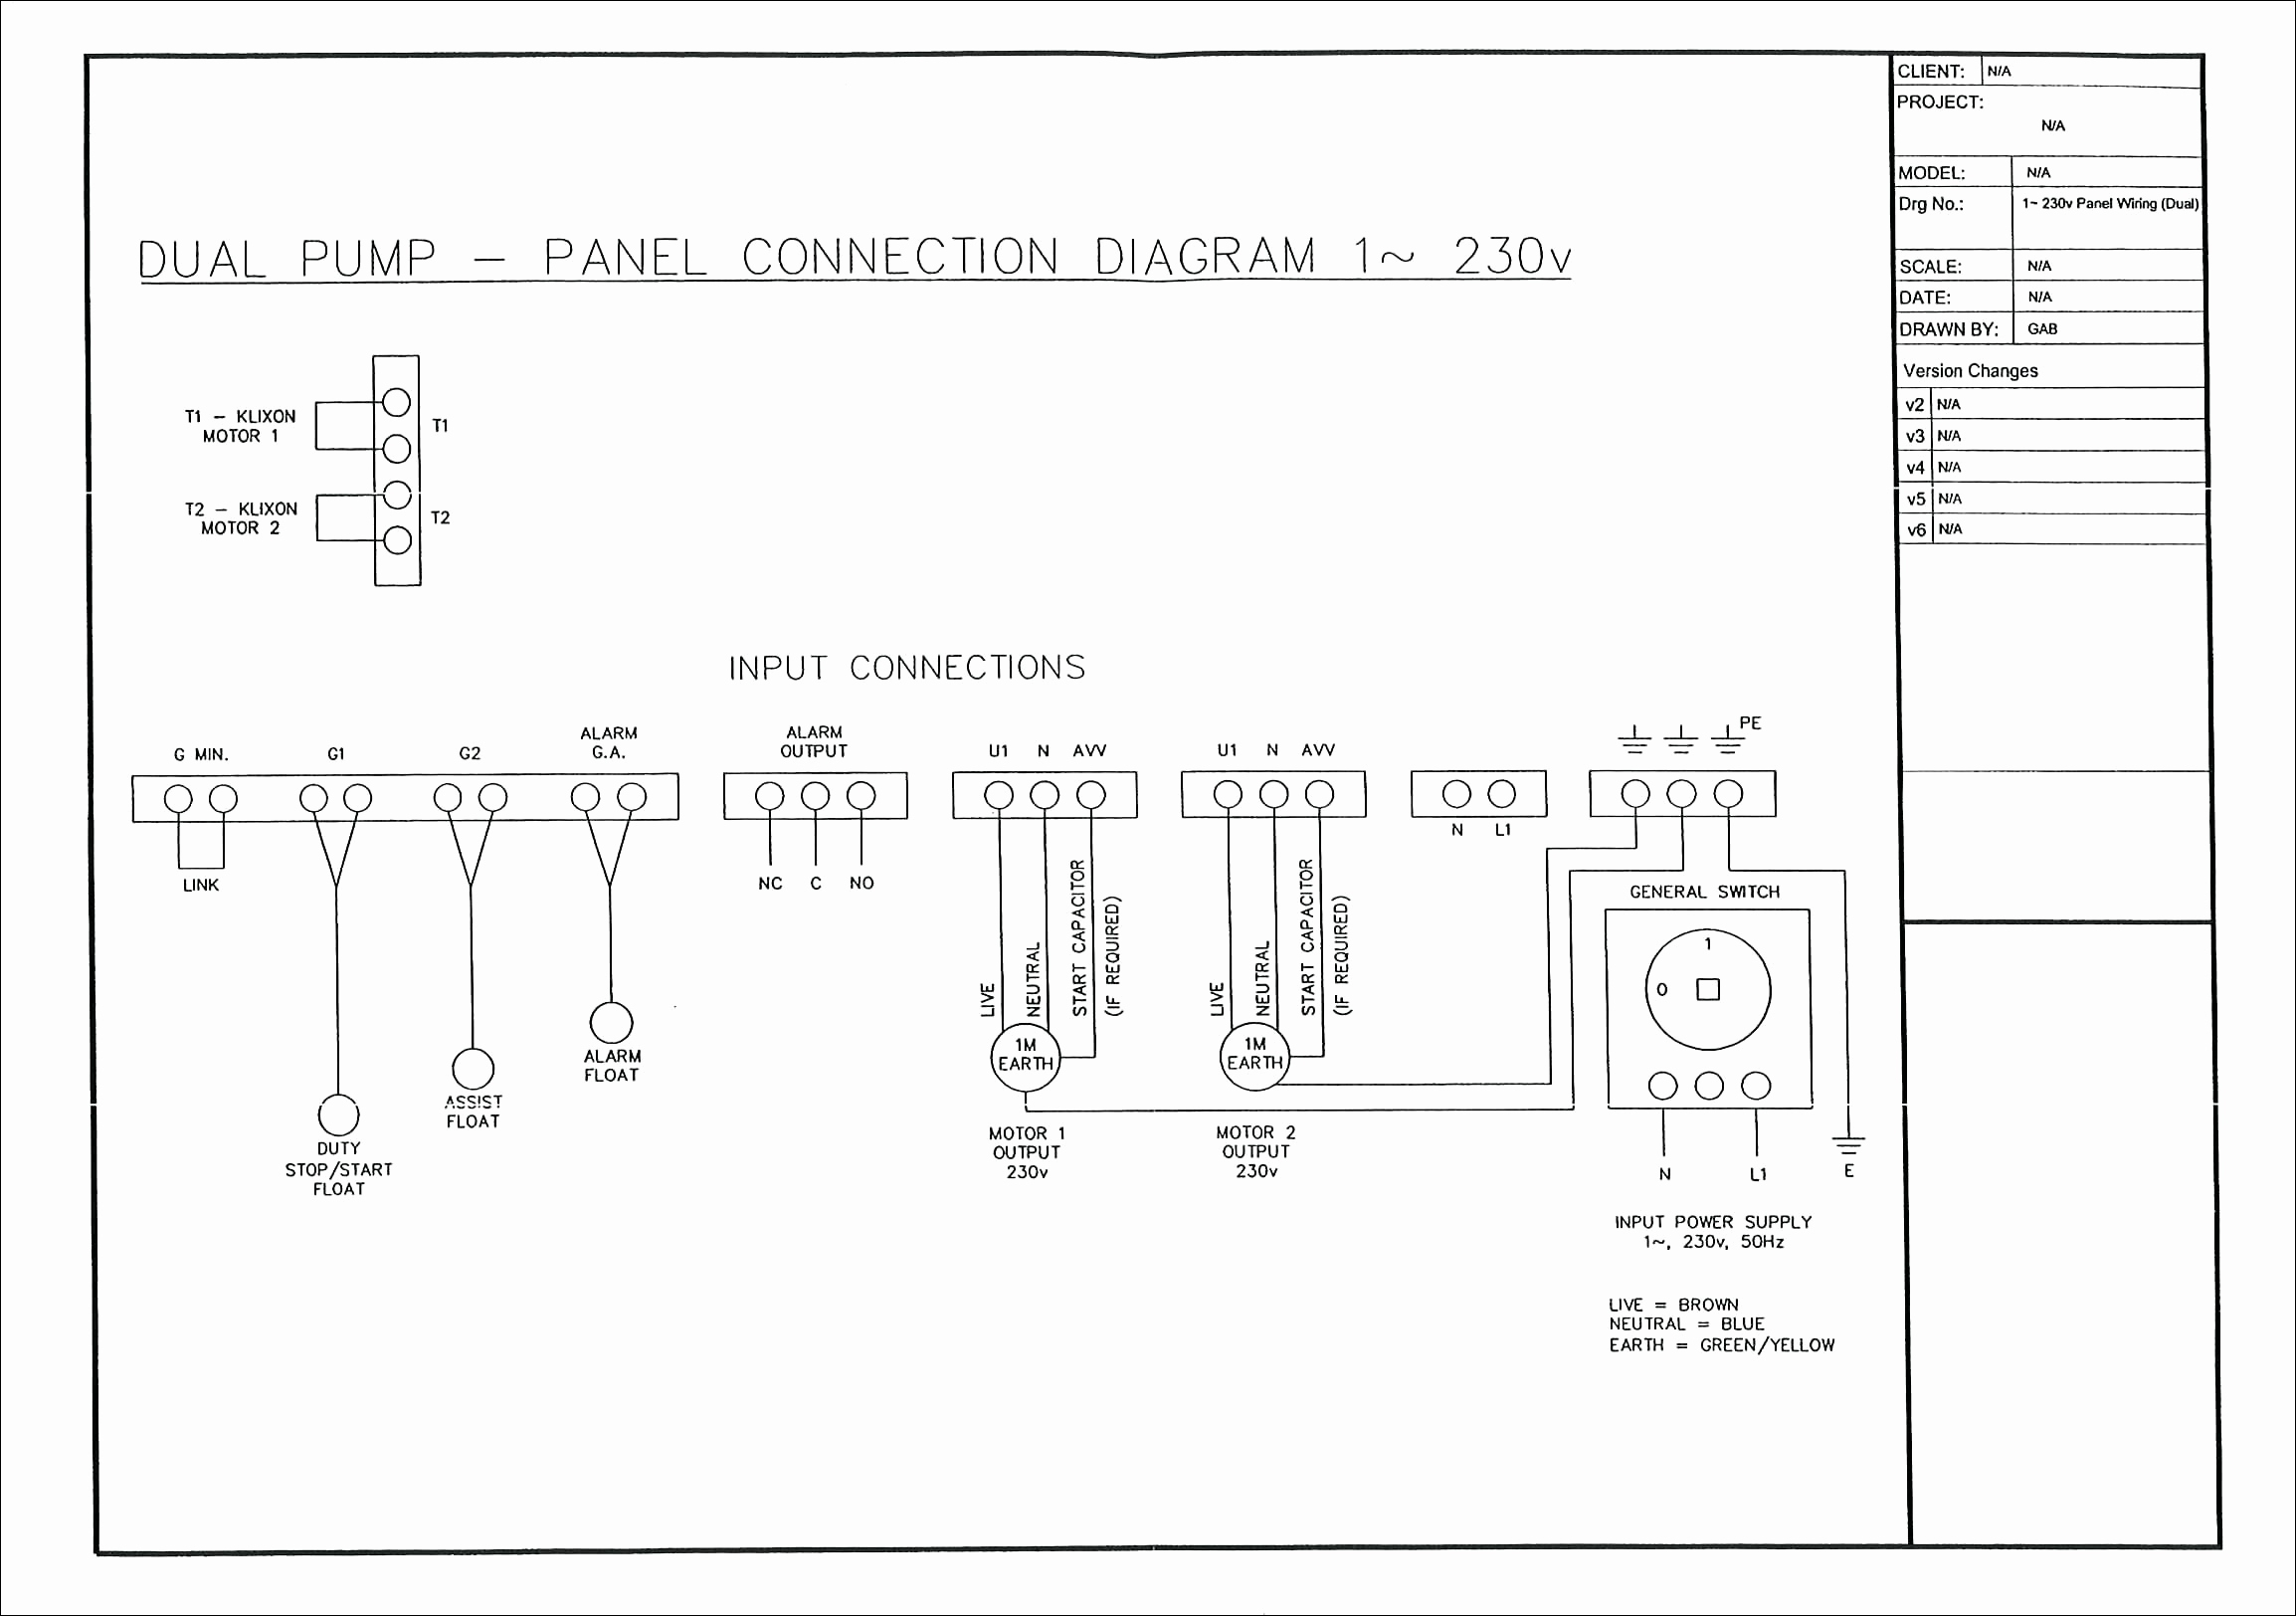 orenco systems control panel wiring diagram Download-dorable simplex pump wiring diagrams image collection simple rh littleforestgirl net Franklin Electric Pumps Lift Station Pump 17-h